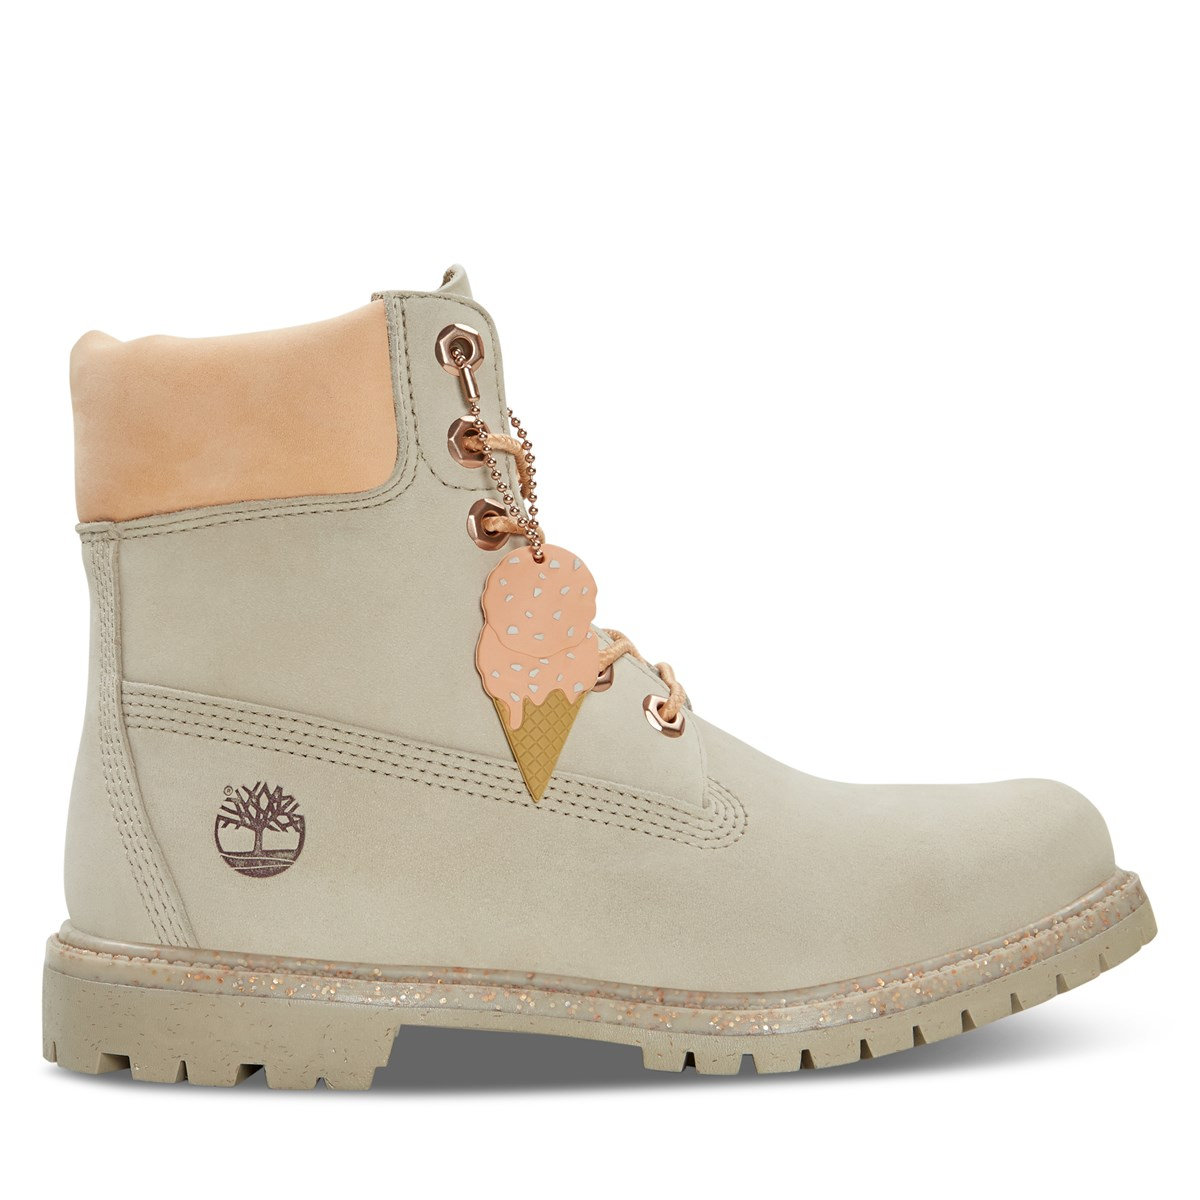 Women's 6 Inch Premium Boots in Taupe